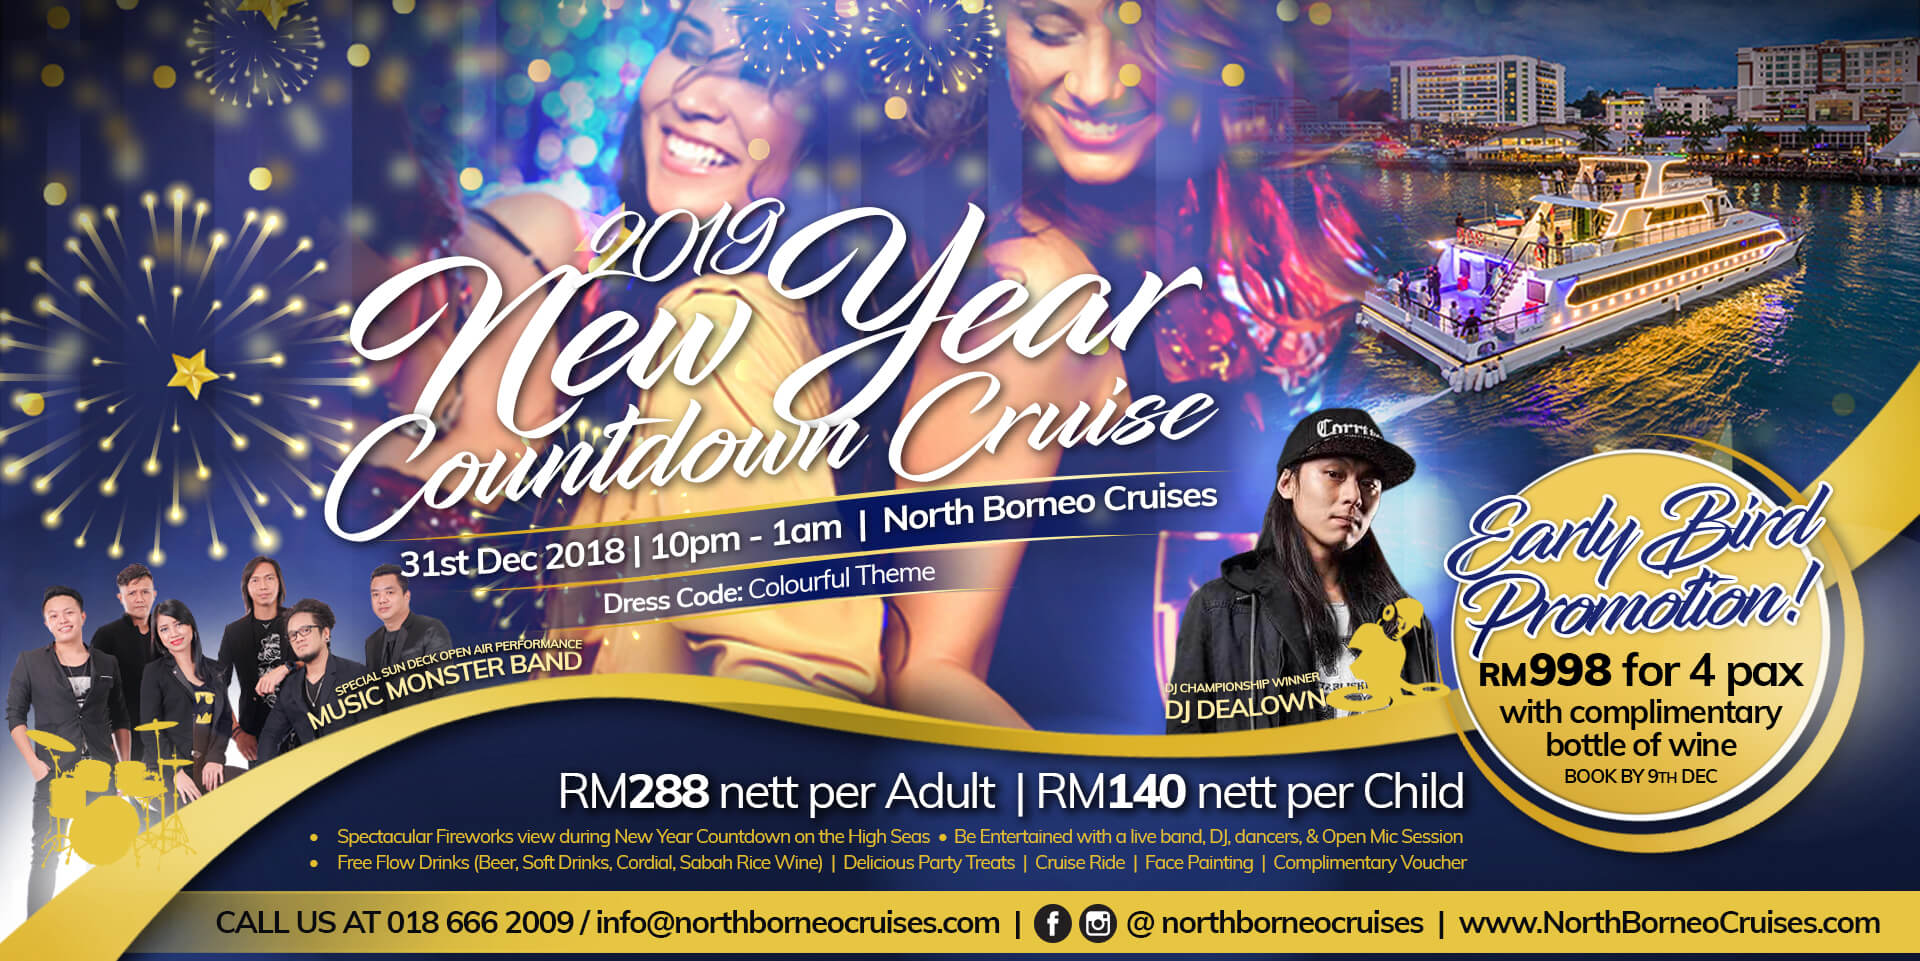 2019 New Year Eve Countdown Cruise